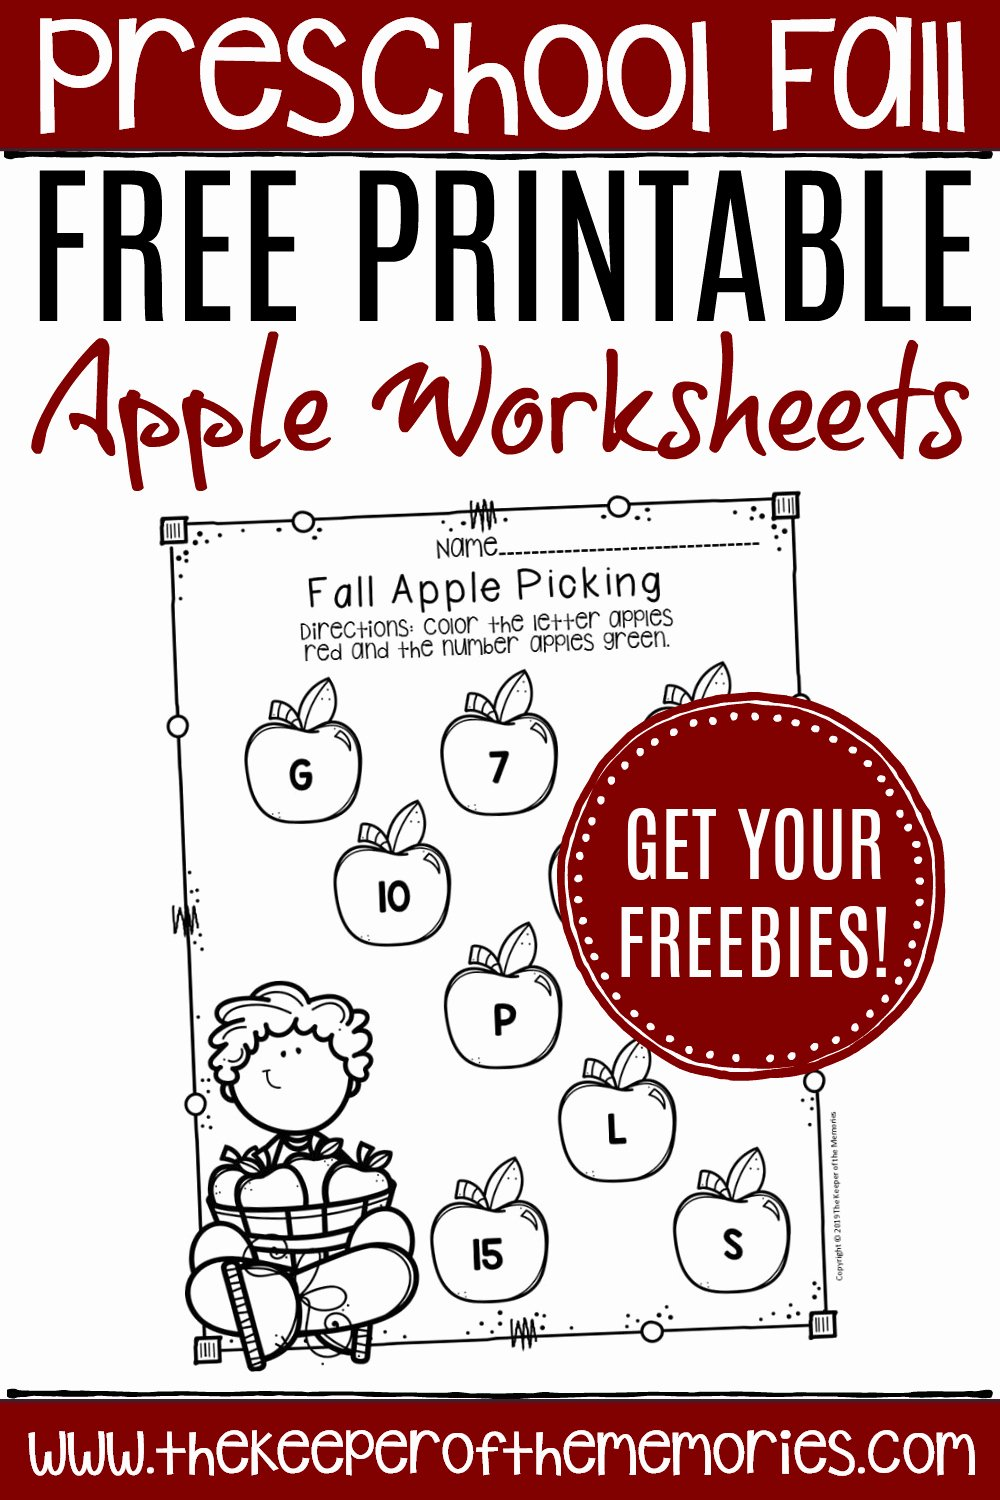 Apple Worksheets for Preschoolers New Free Printable Apple Worksheets for Preschoolers